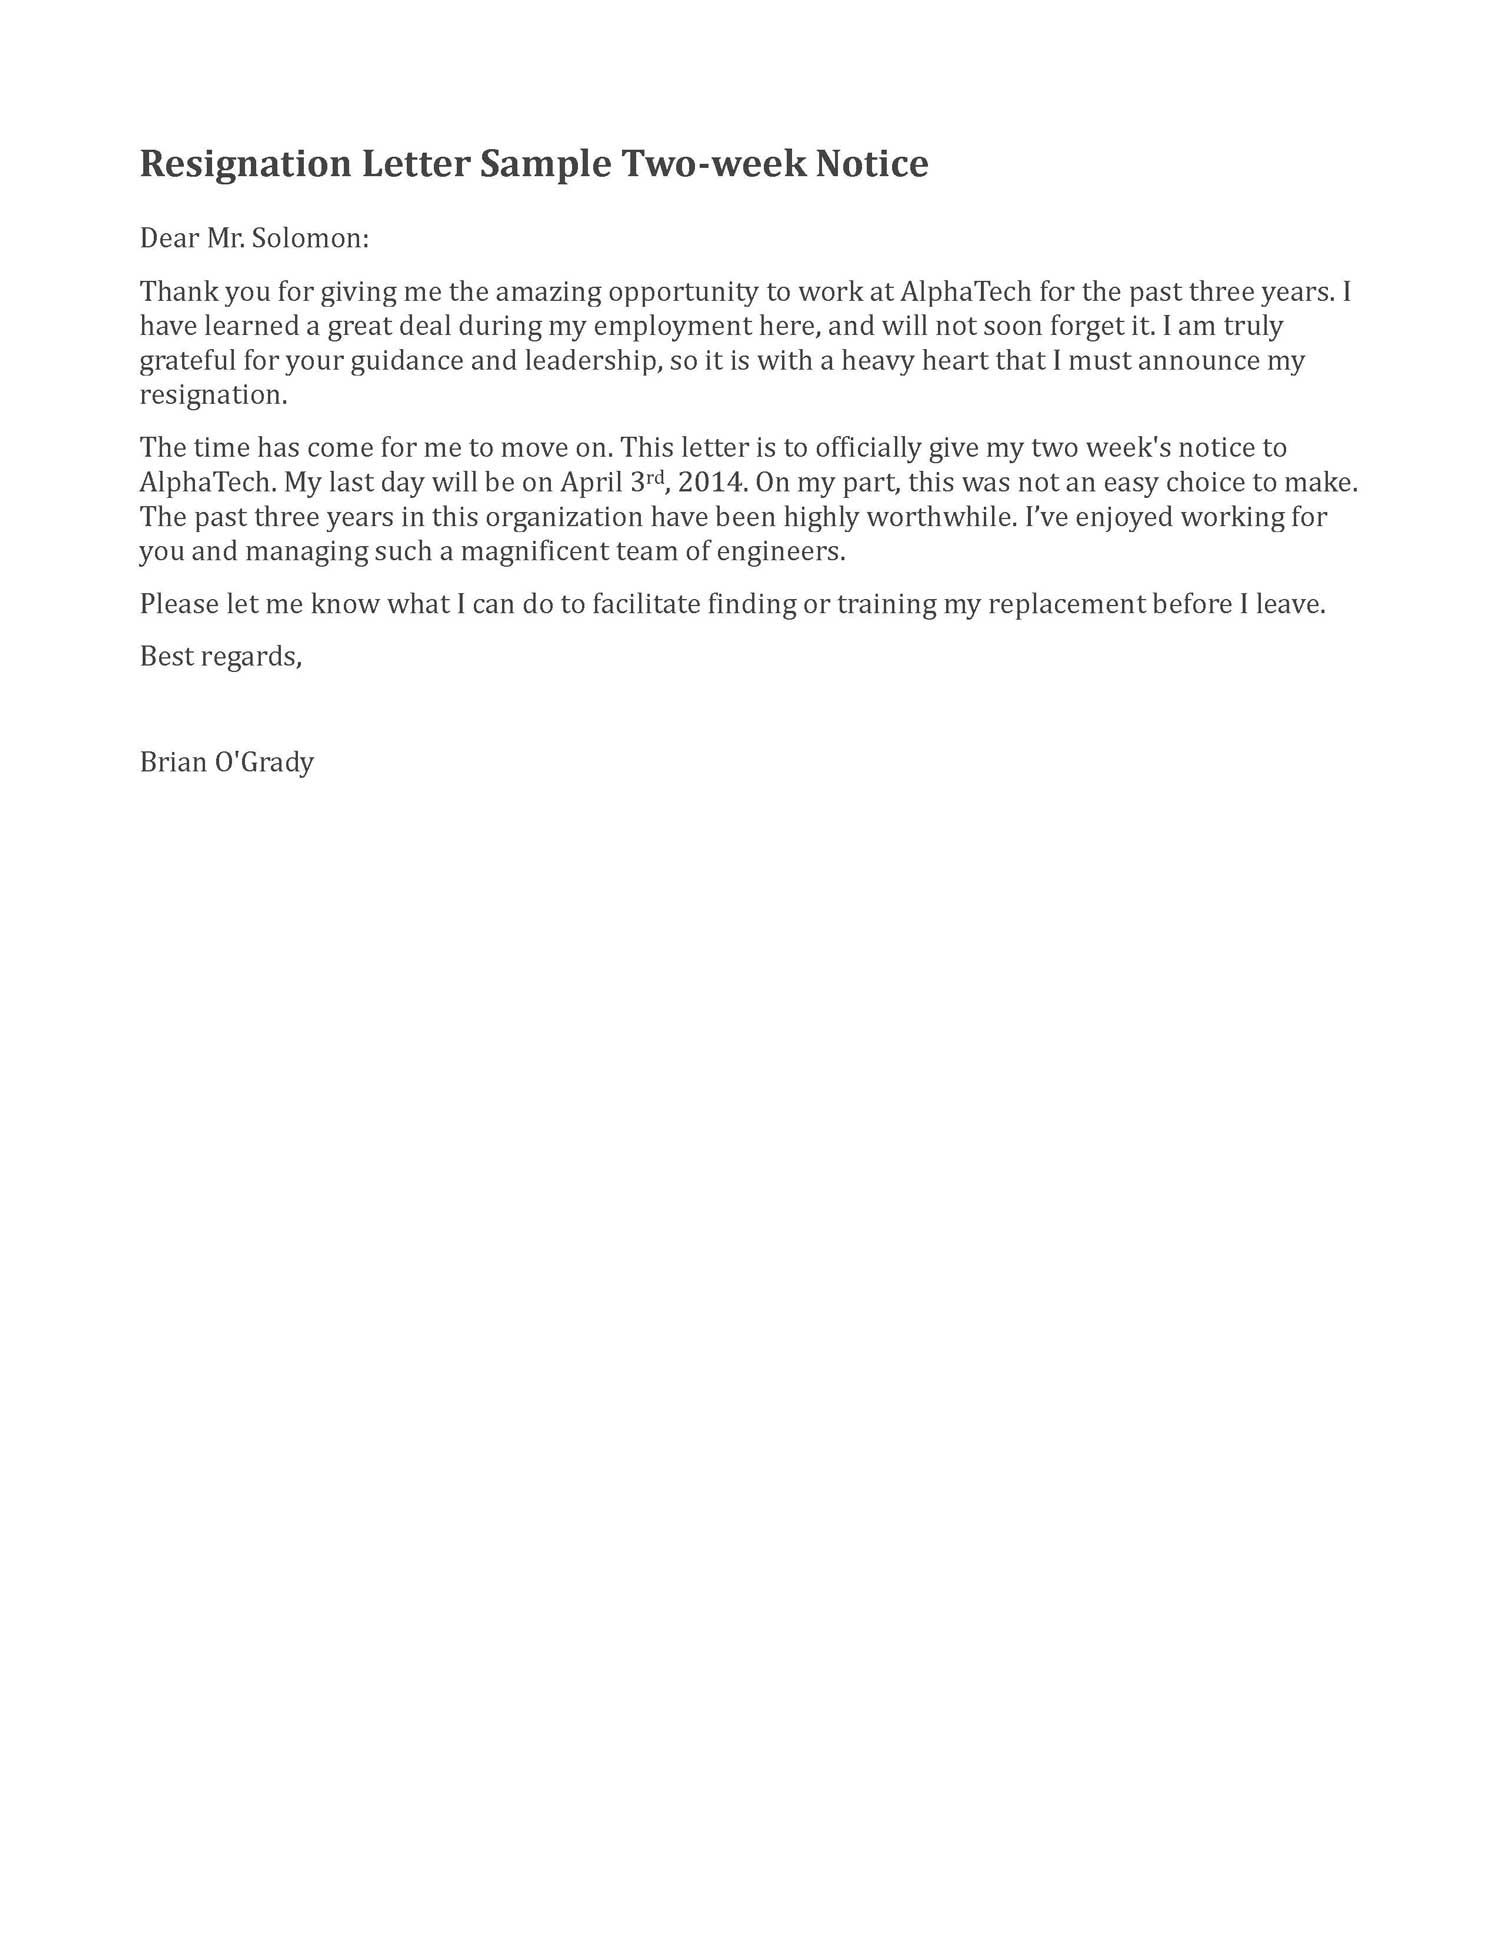 Exceptional Resignation Letter Sample 2 Weeks Notice   Google Search